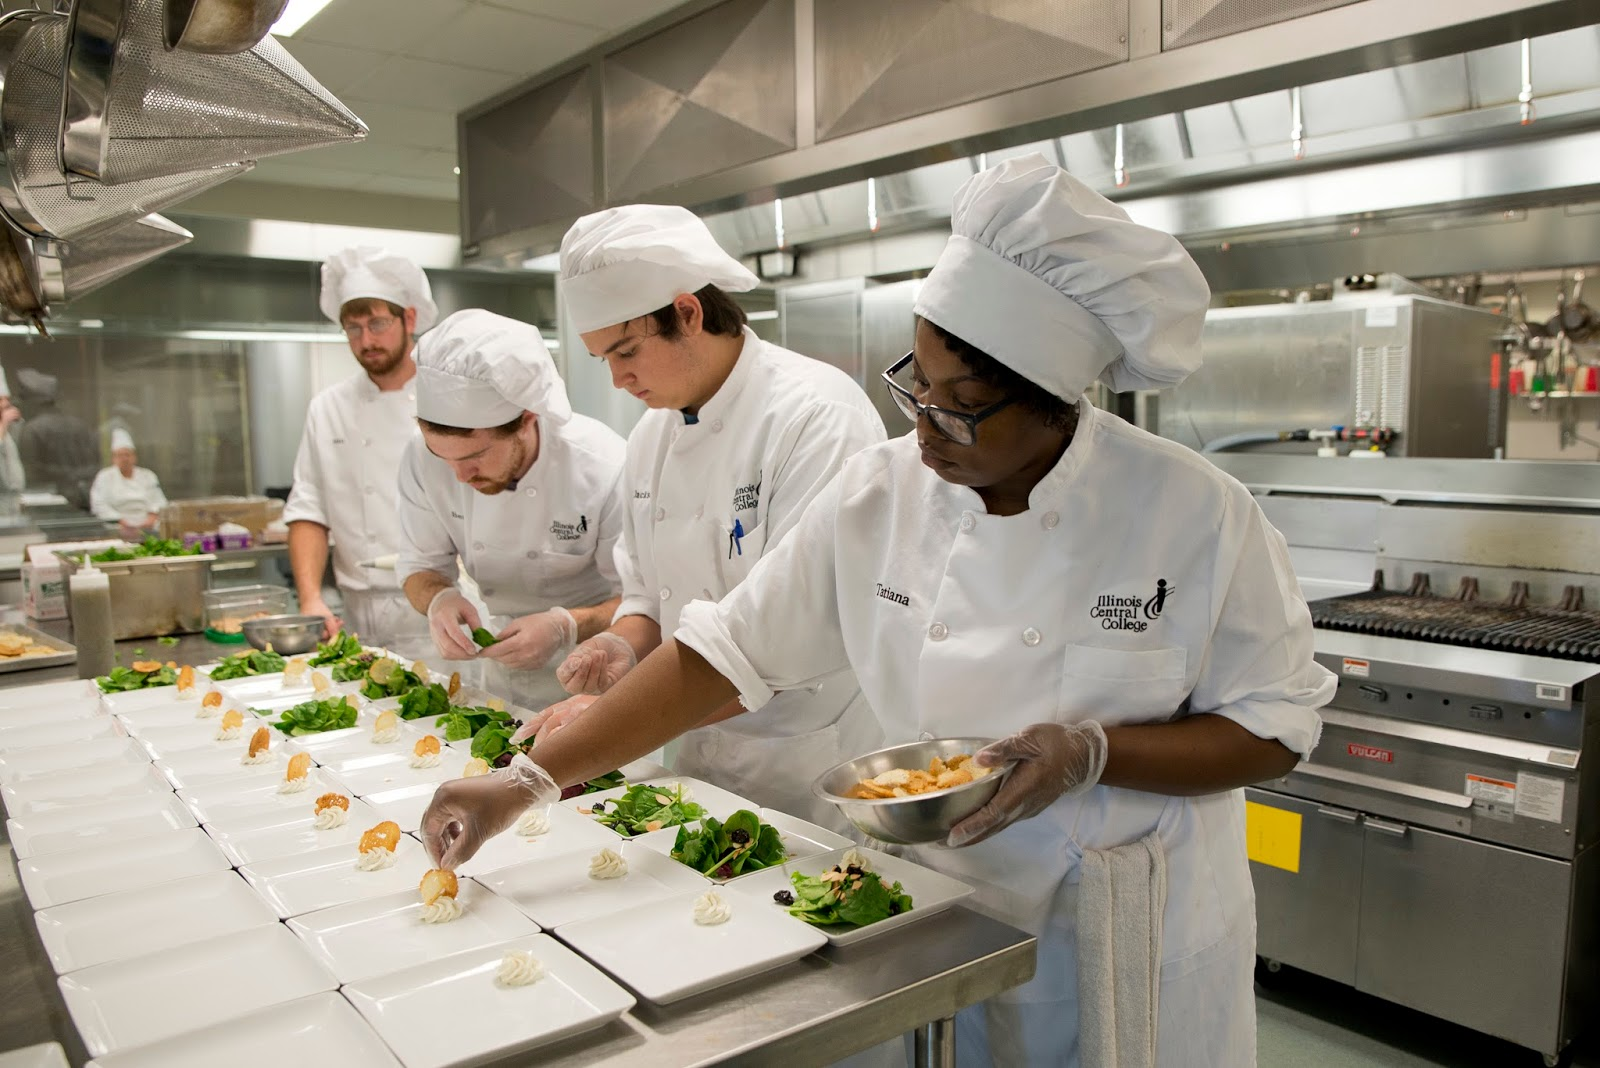 culinary arts paper Start studying culinary arts 1- final exam review learn vocabulary, terms, and more with flashcards, games, and other study tools.